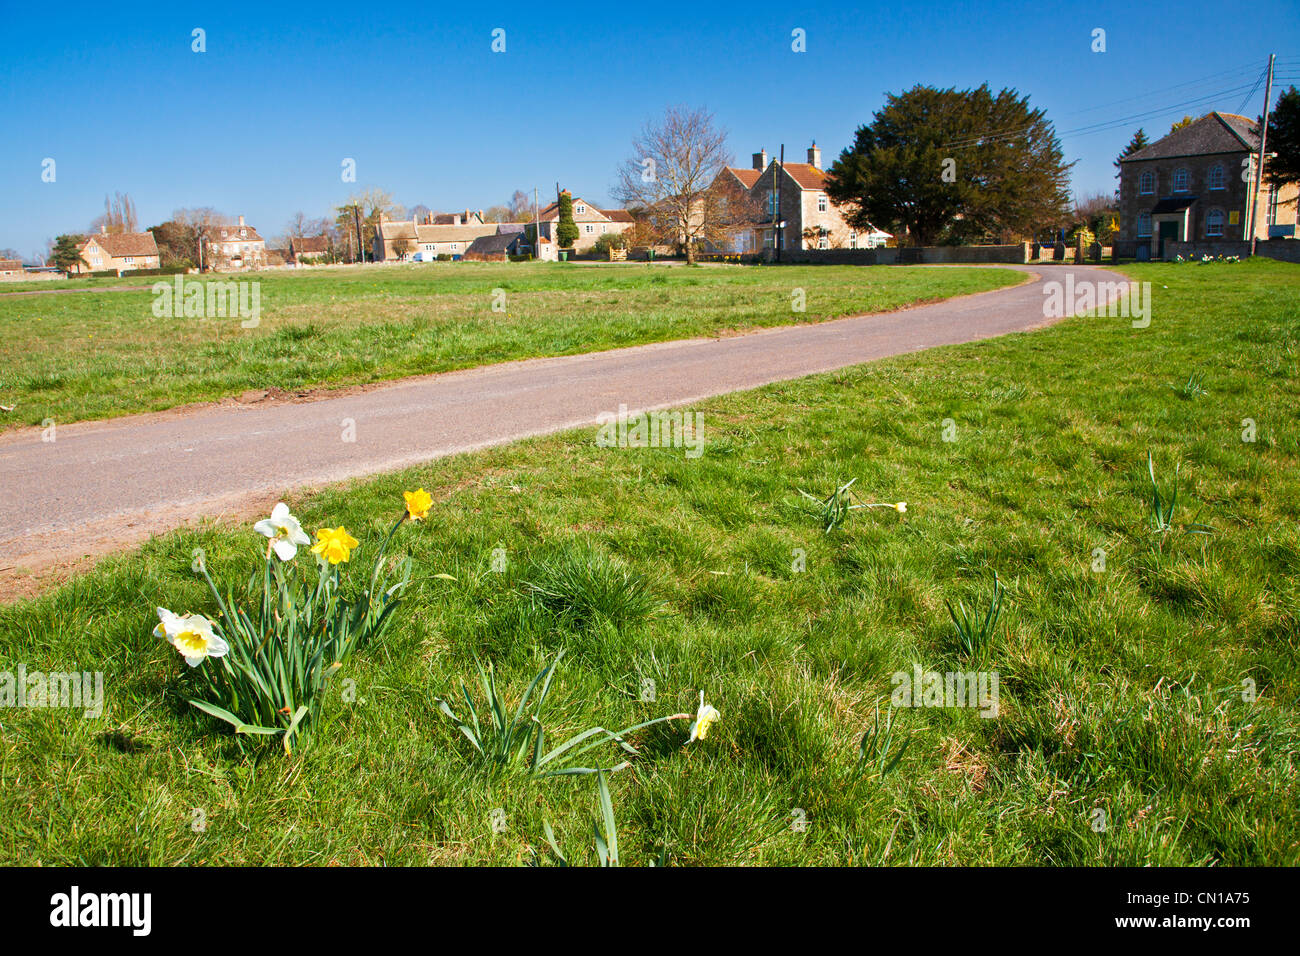 Houses around the large open common at Broughton Gifford, Wiltshire, England, UK Stock Photo